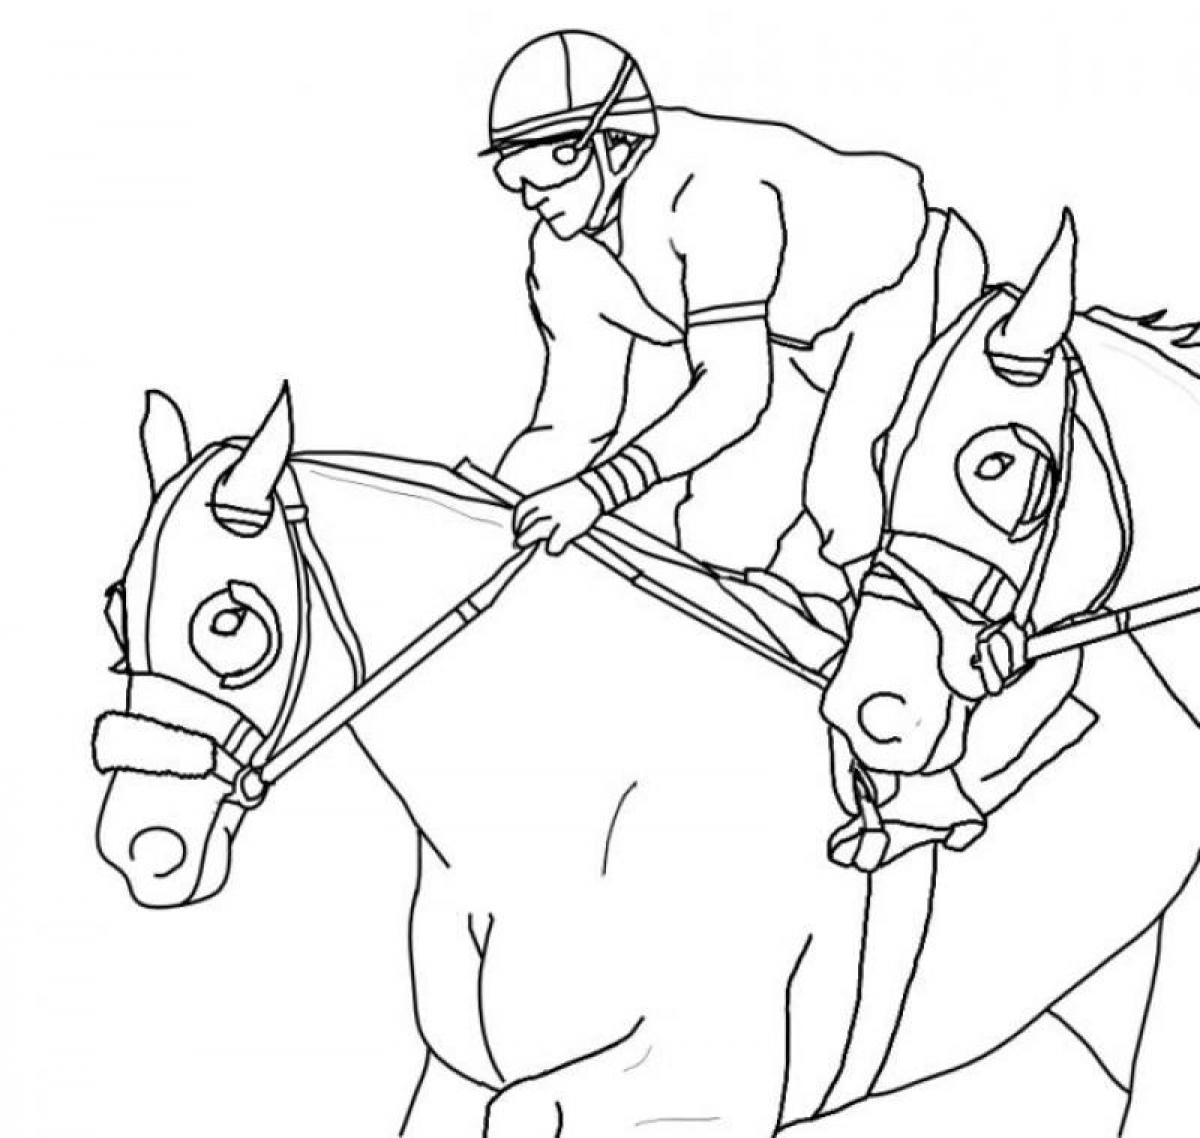 1200x1138 Unusual Race Horse Coloring Pages To Print Cowboy For Kids